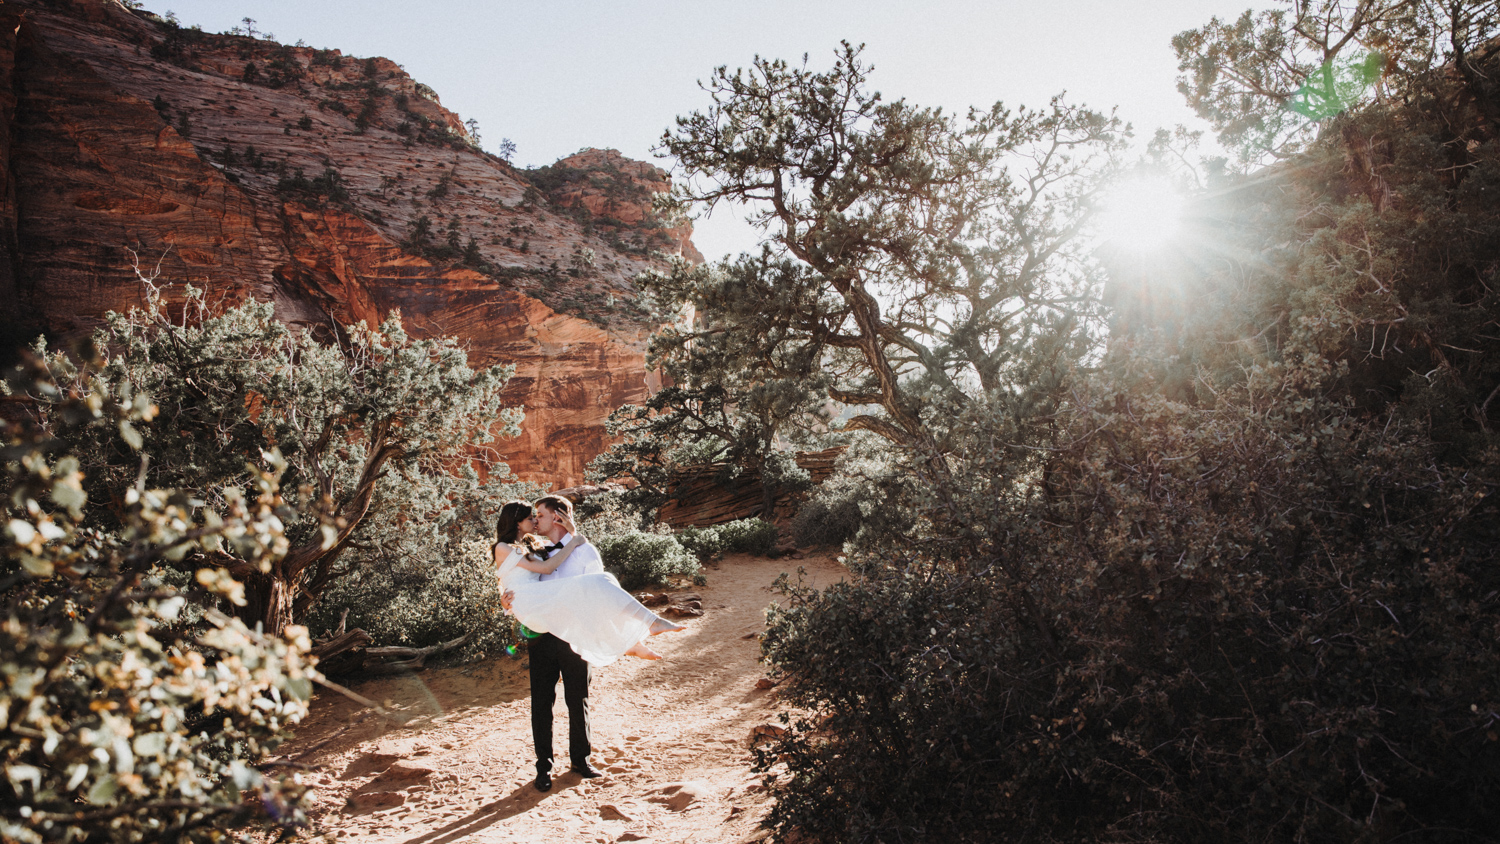 After Wedding Zion Park USA 13